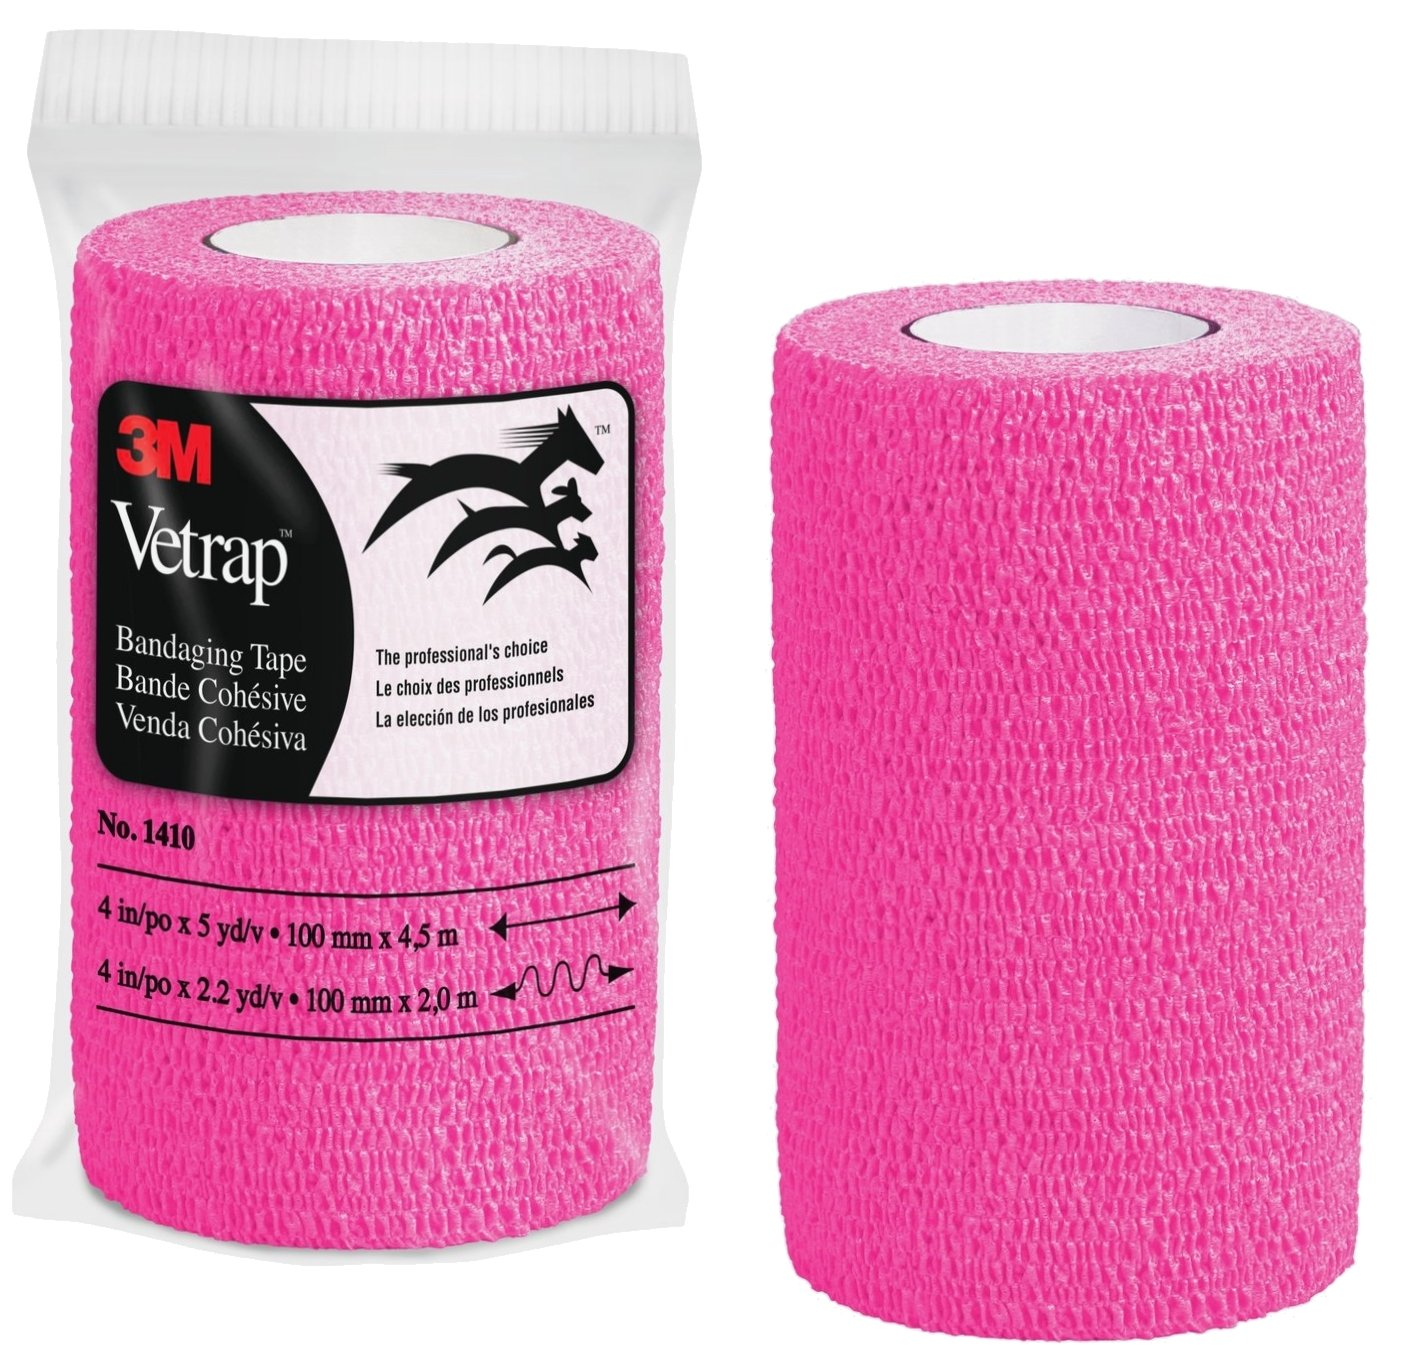 3M Vetrap 4'' Bright Color Bandaging Tape, 4''x 5 Yards, 3M Box, 12 Roll Case (Hot Pink)